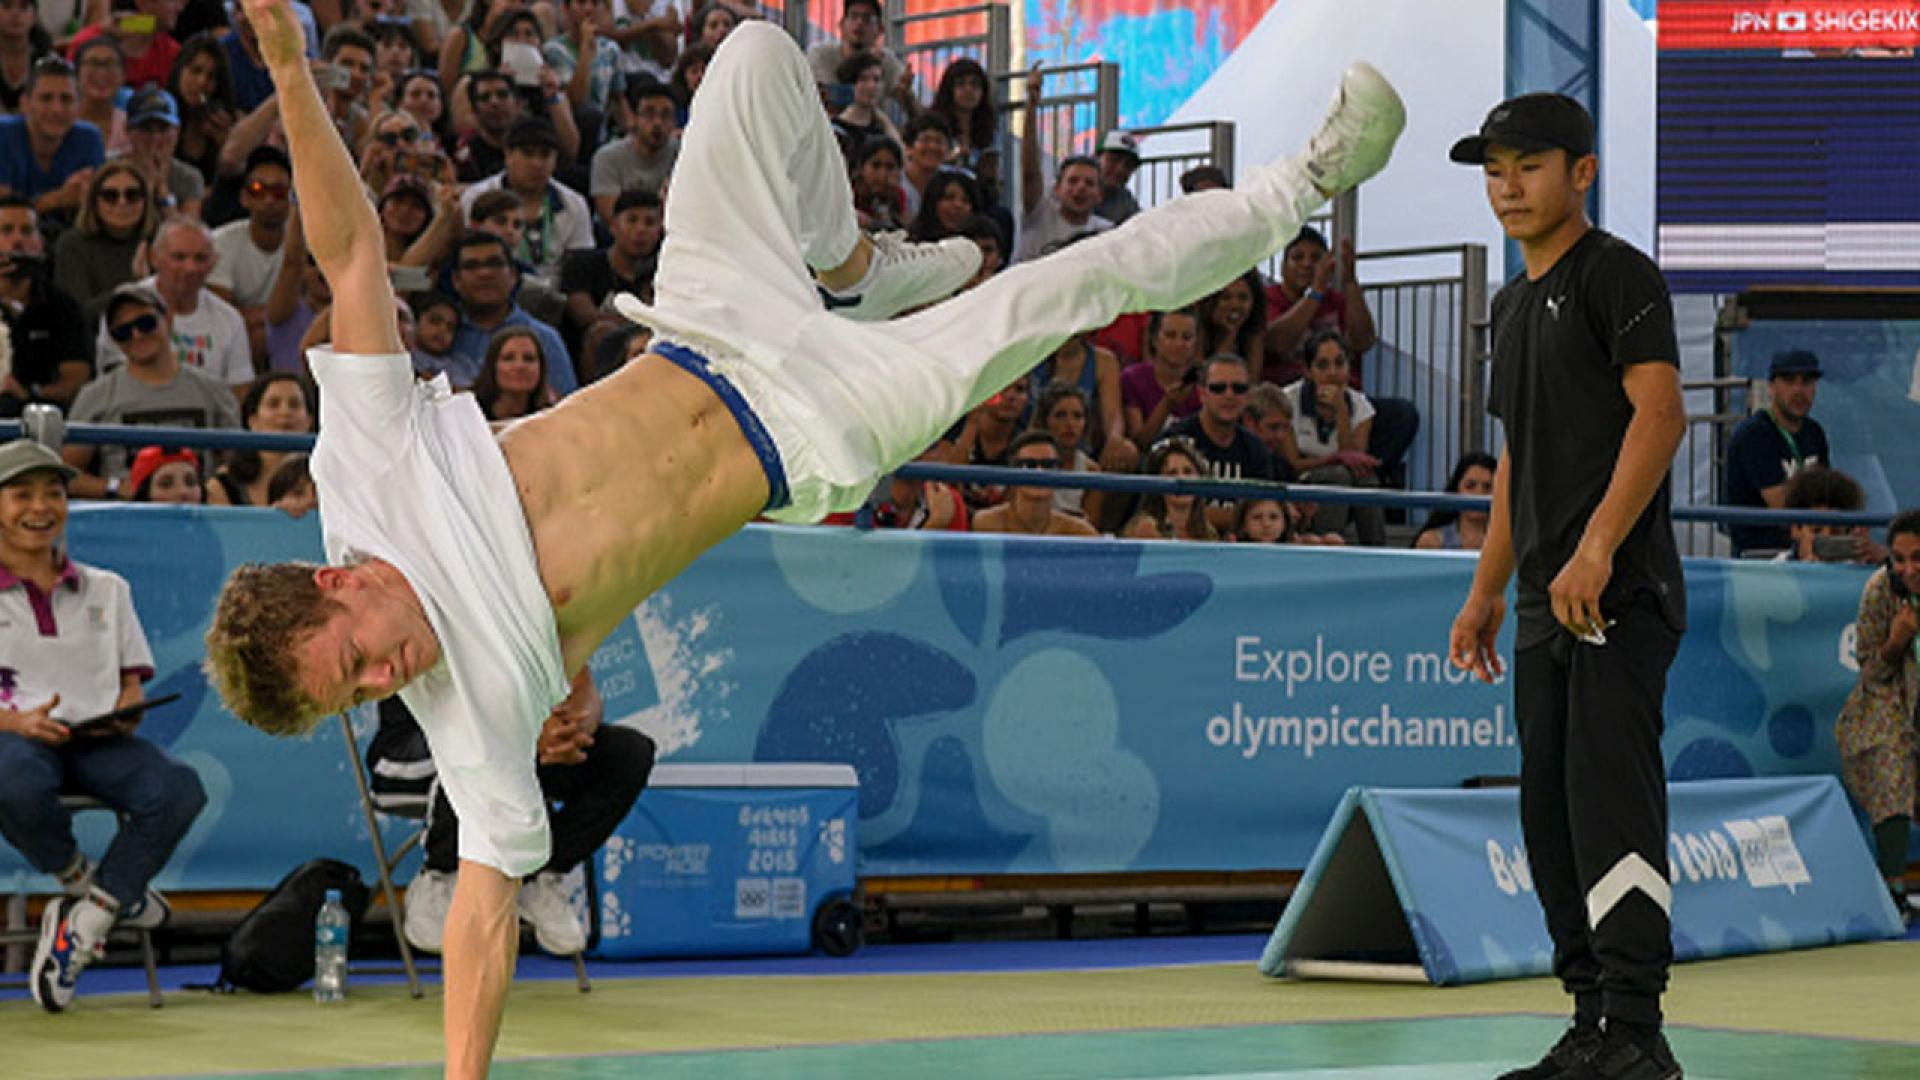 Russia's b-boy Bumblebee (L) competes against Japan's b-boy Shigelix during a battle at the Youth Olympic Games in Buenos Aires, Argentina on October 08, 2018.